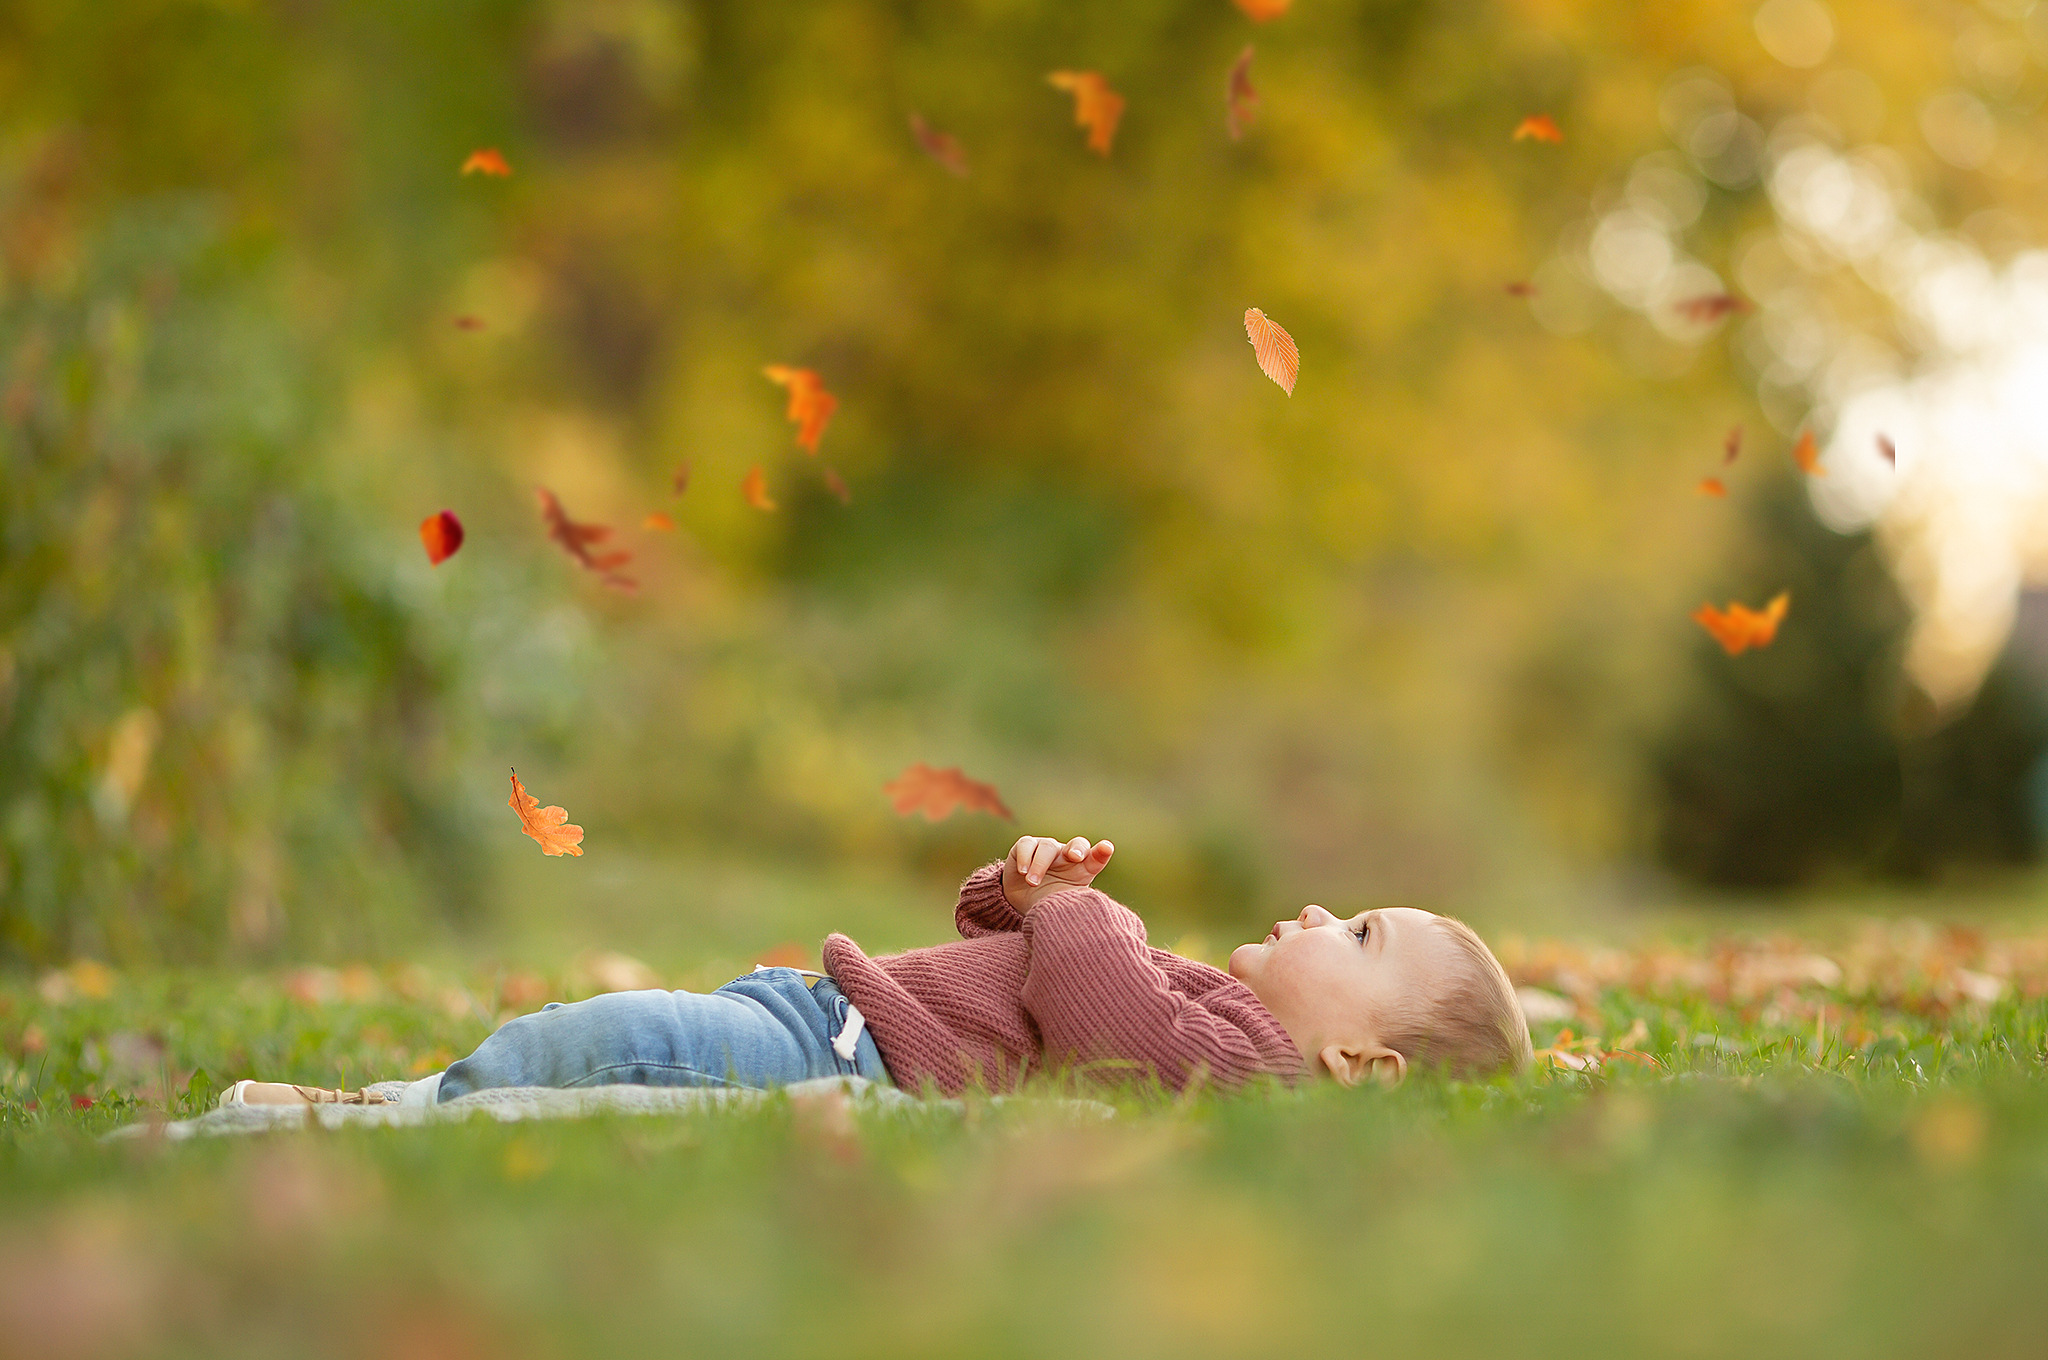 Portrait of Infant baby boy in fall